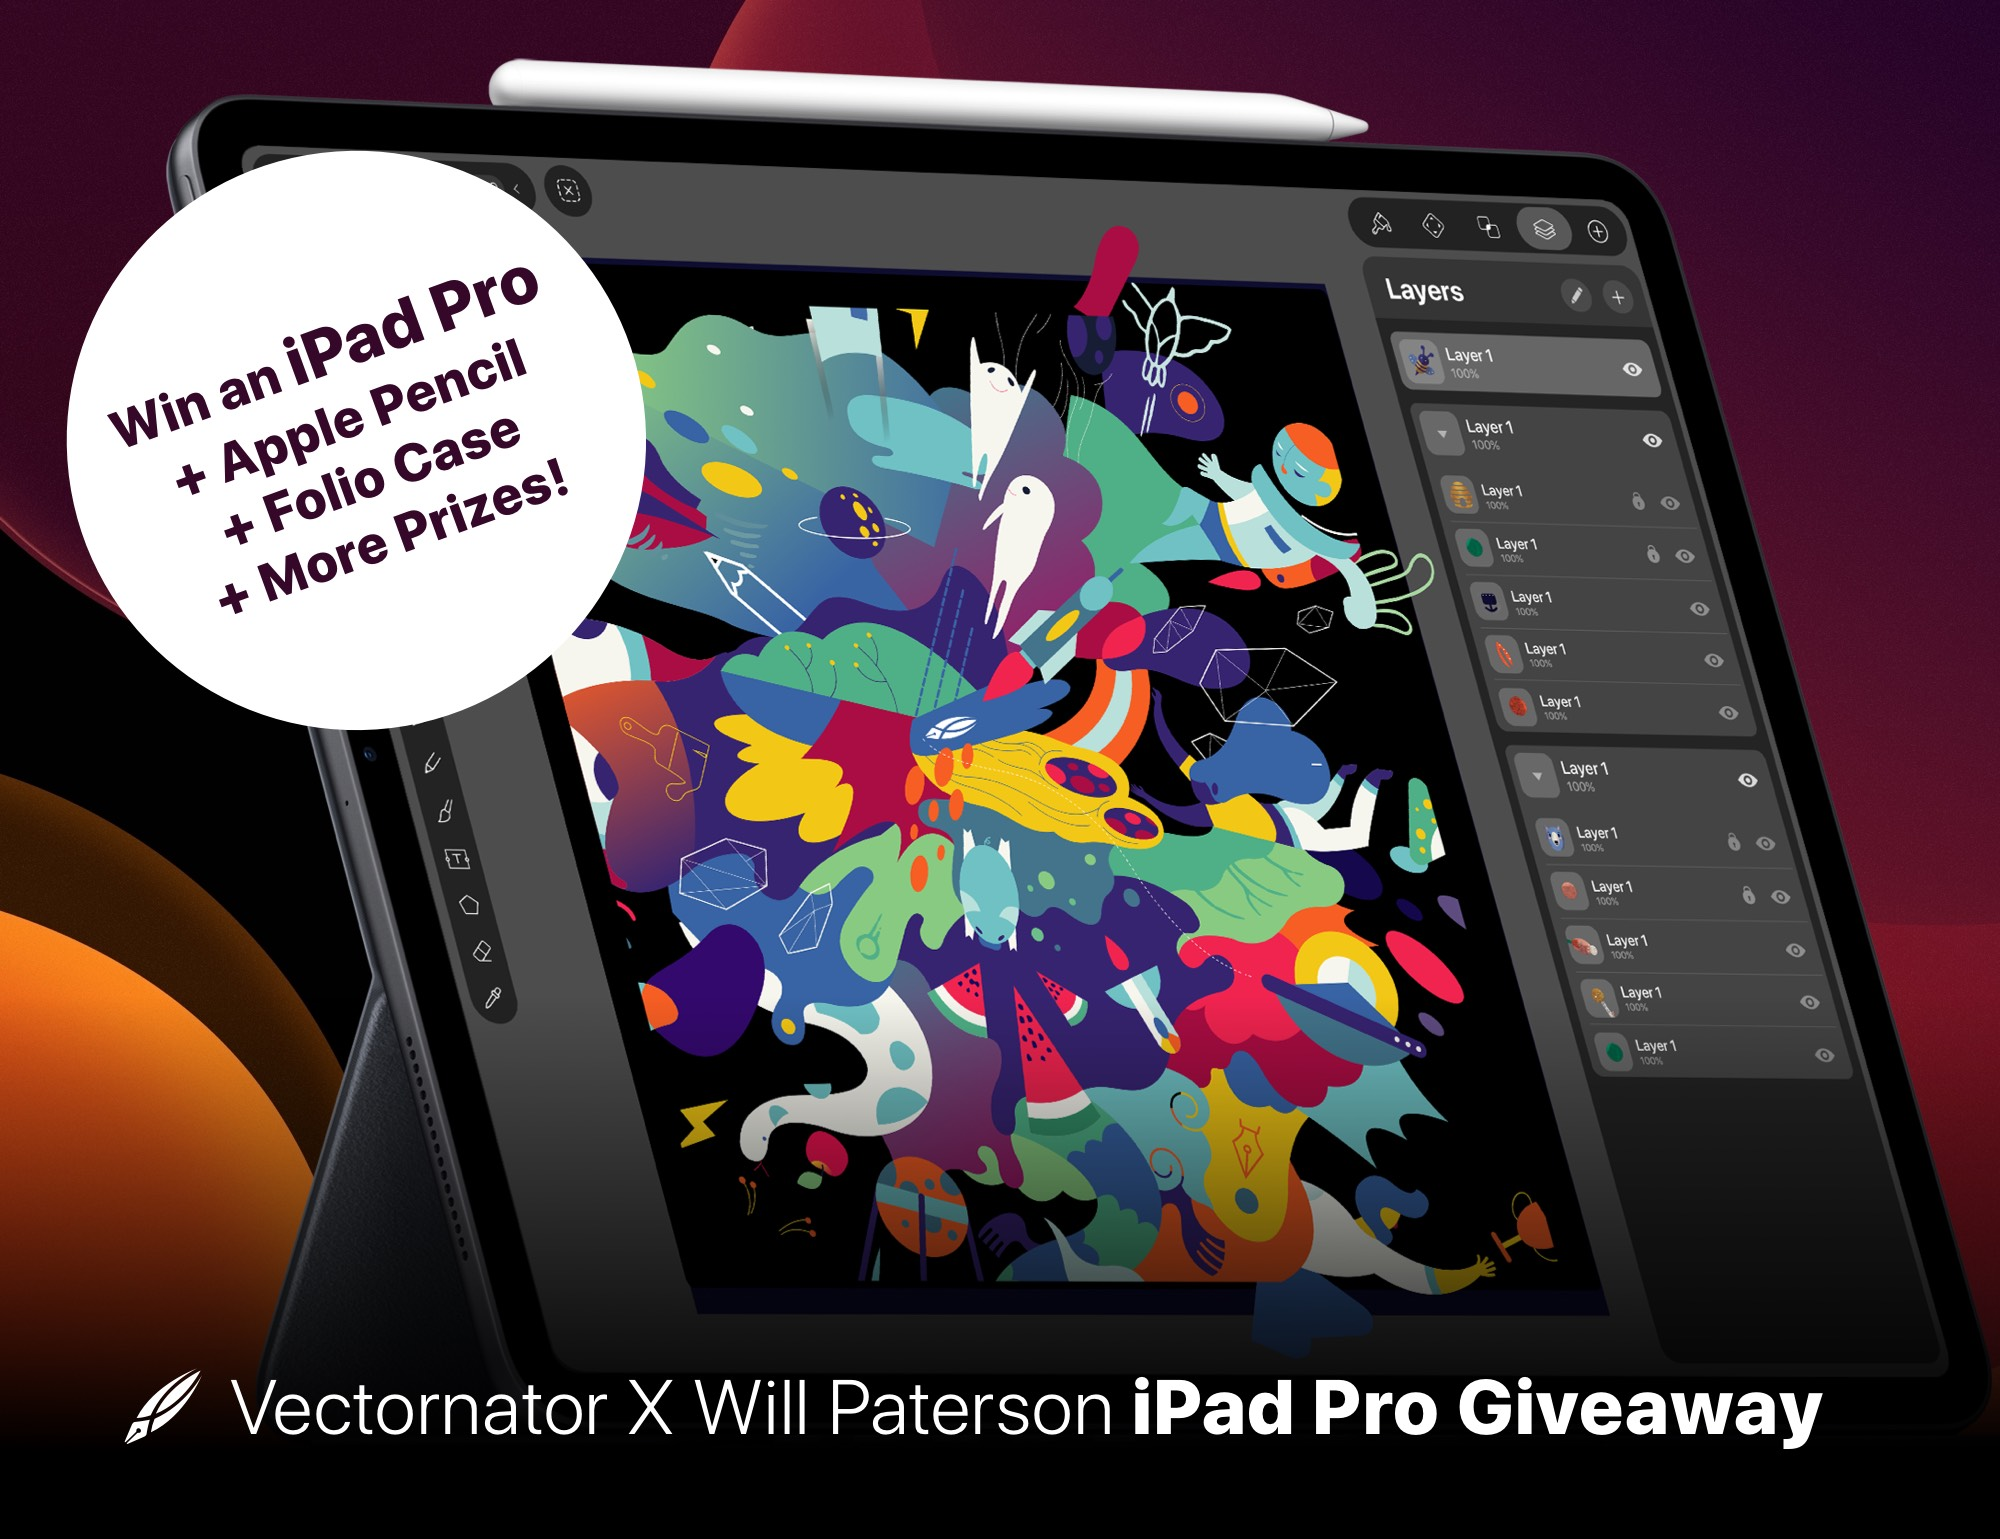 iPad Pro 2018 with Apple Pencil 2nd Gen, Folio Case and more!